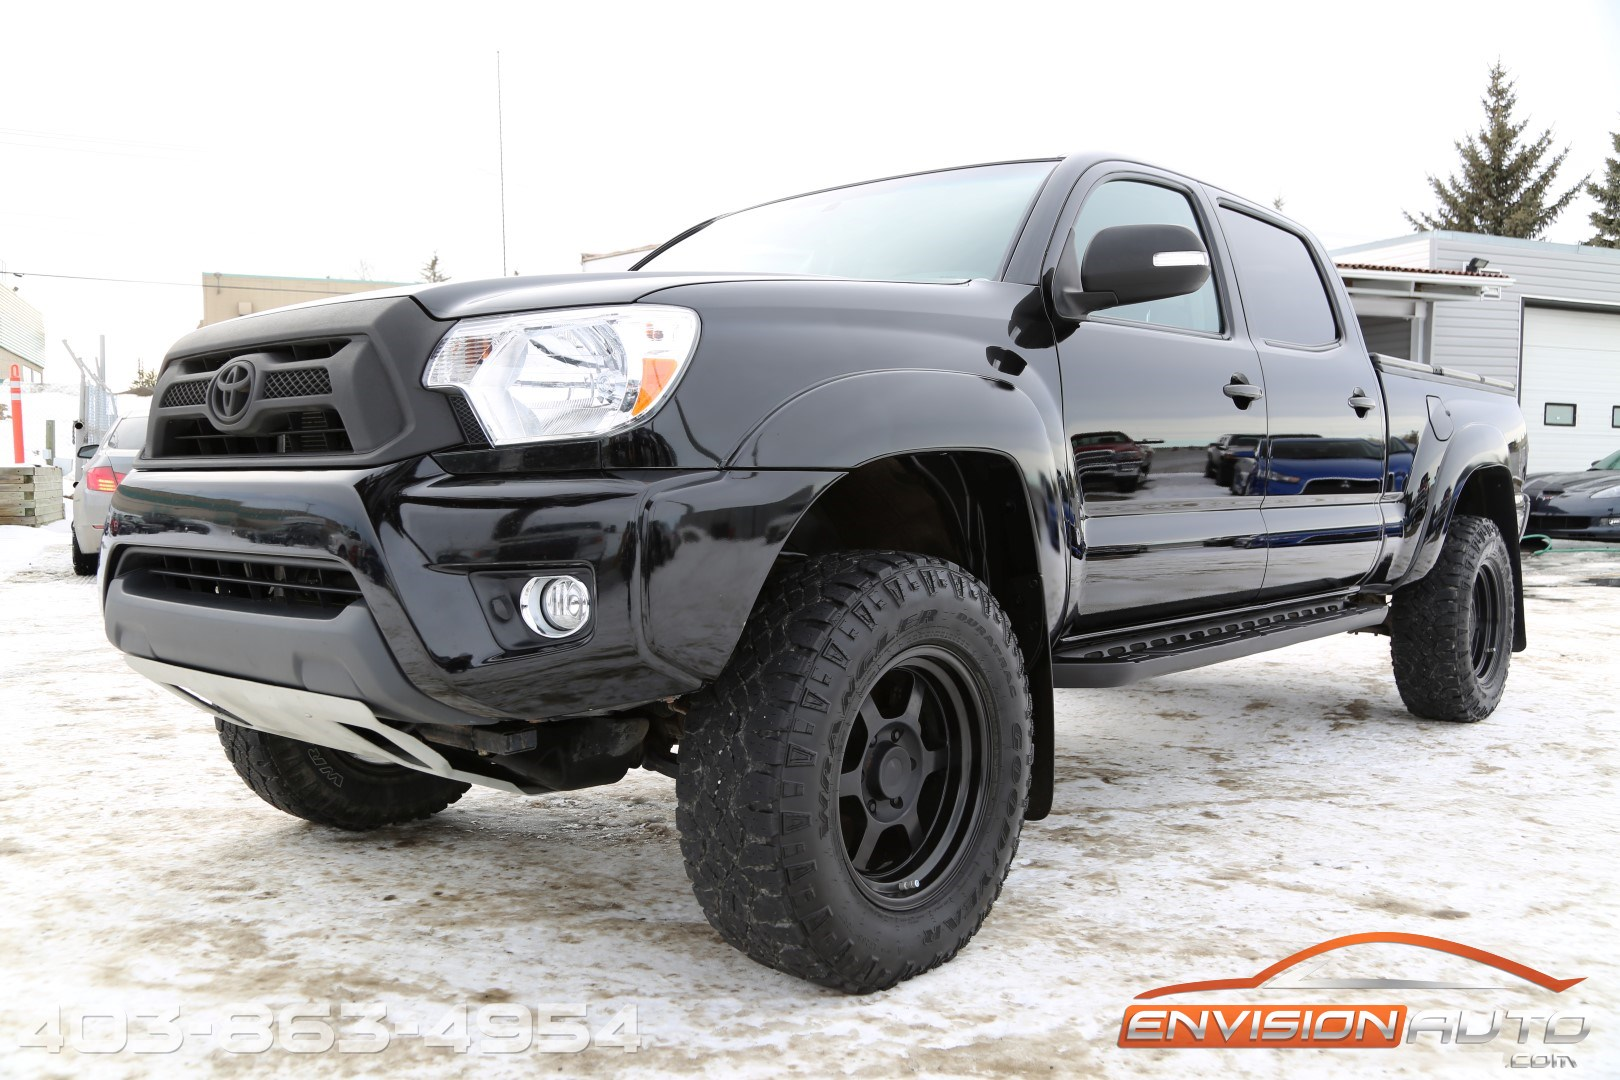 2013 toyota tacoma trd sport supercharged double cab long bed 4 4 envision auto. Black Bedroom Furniture Sets. Home Design Ideas